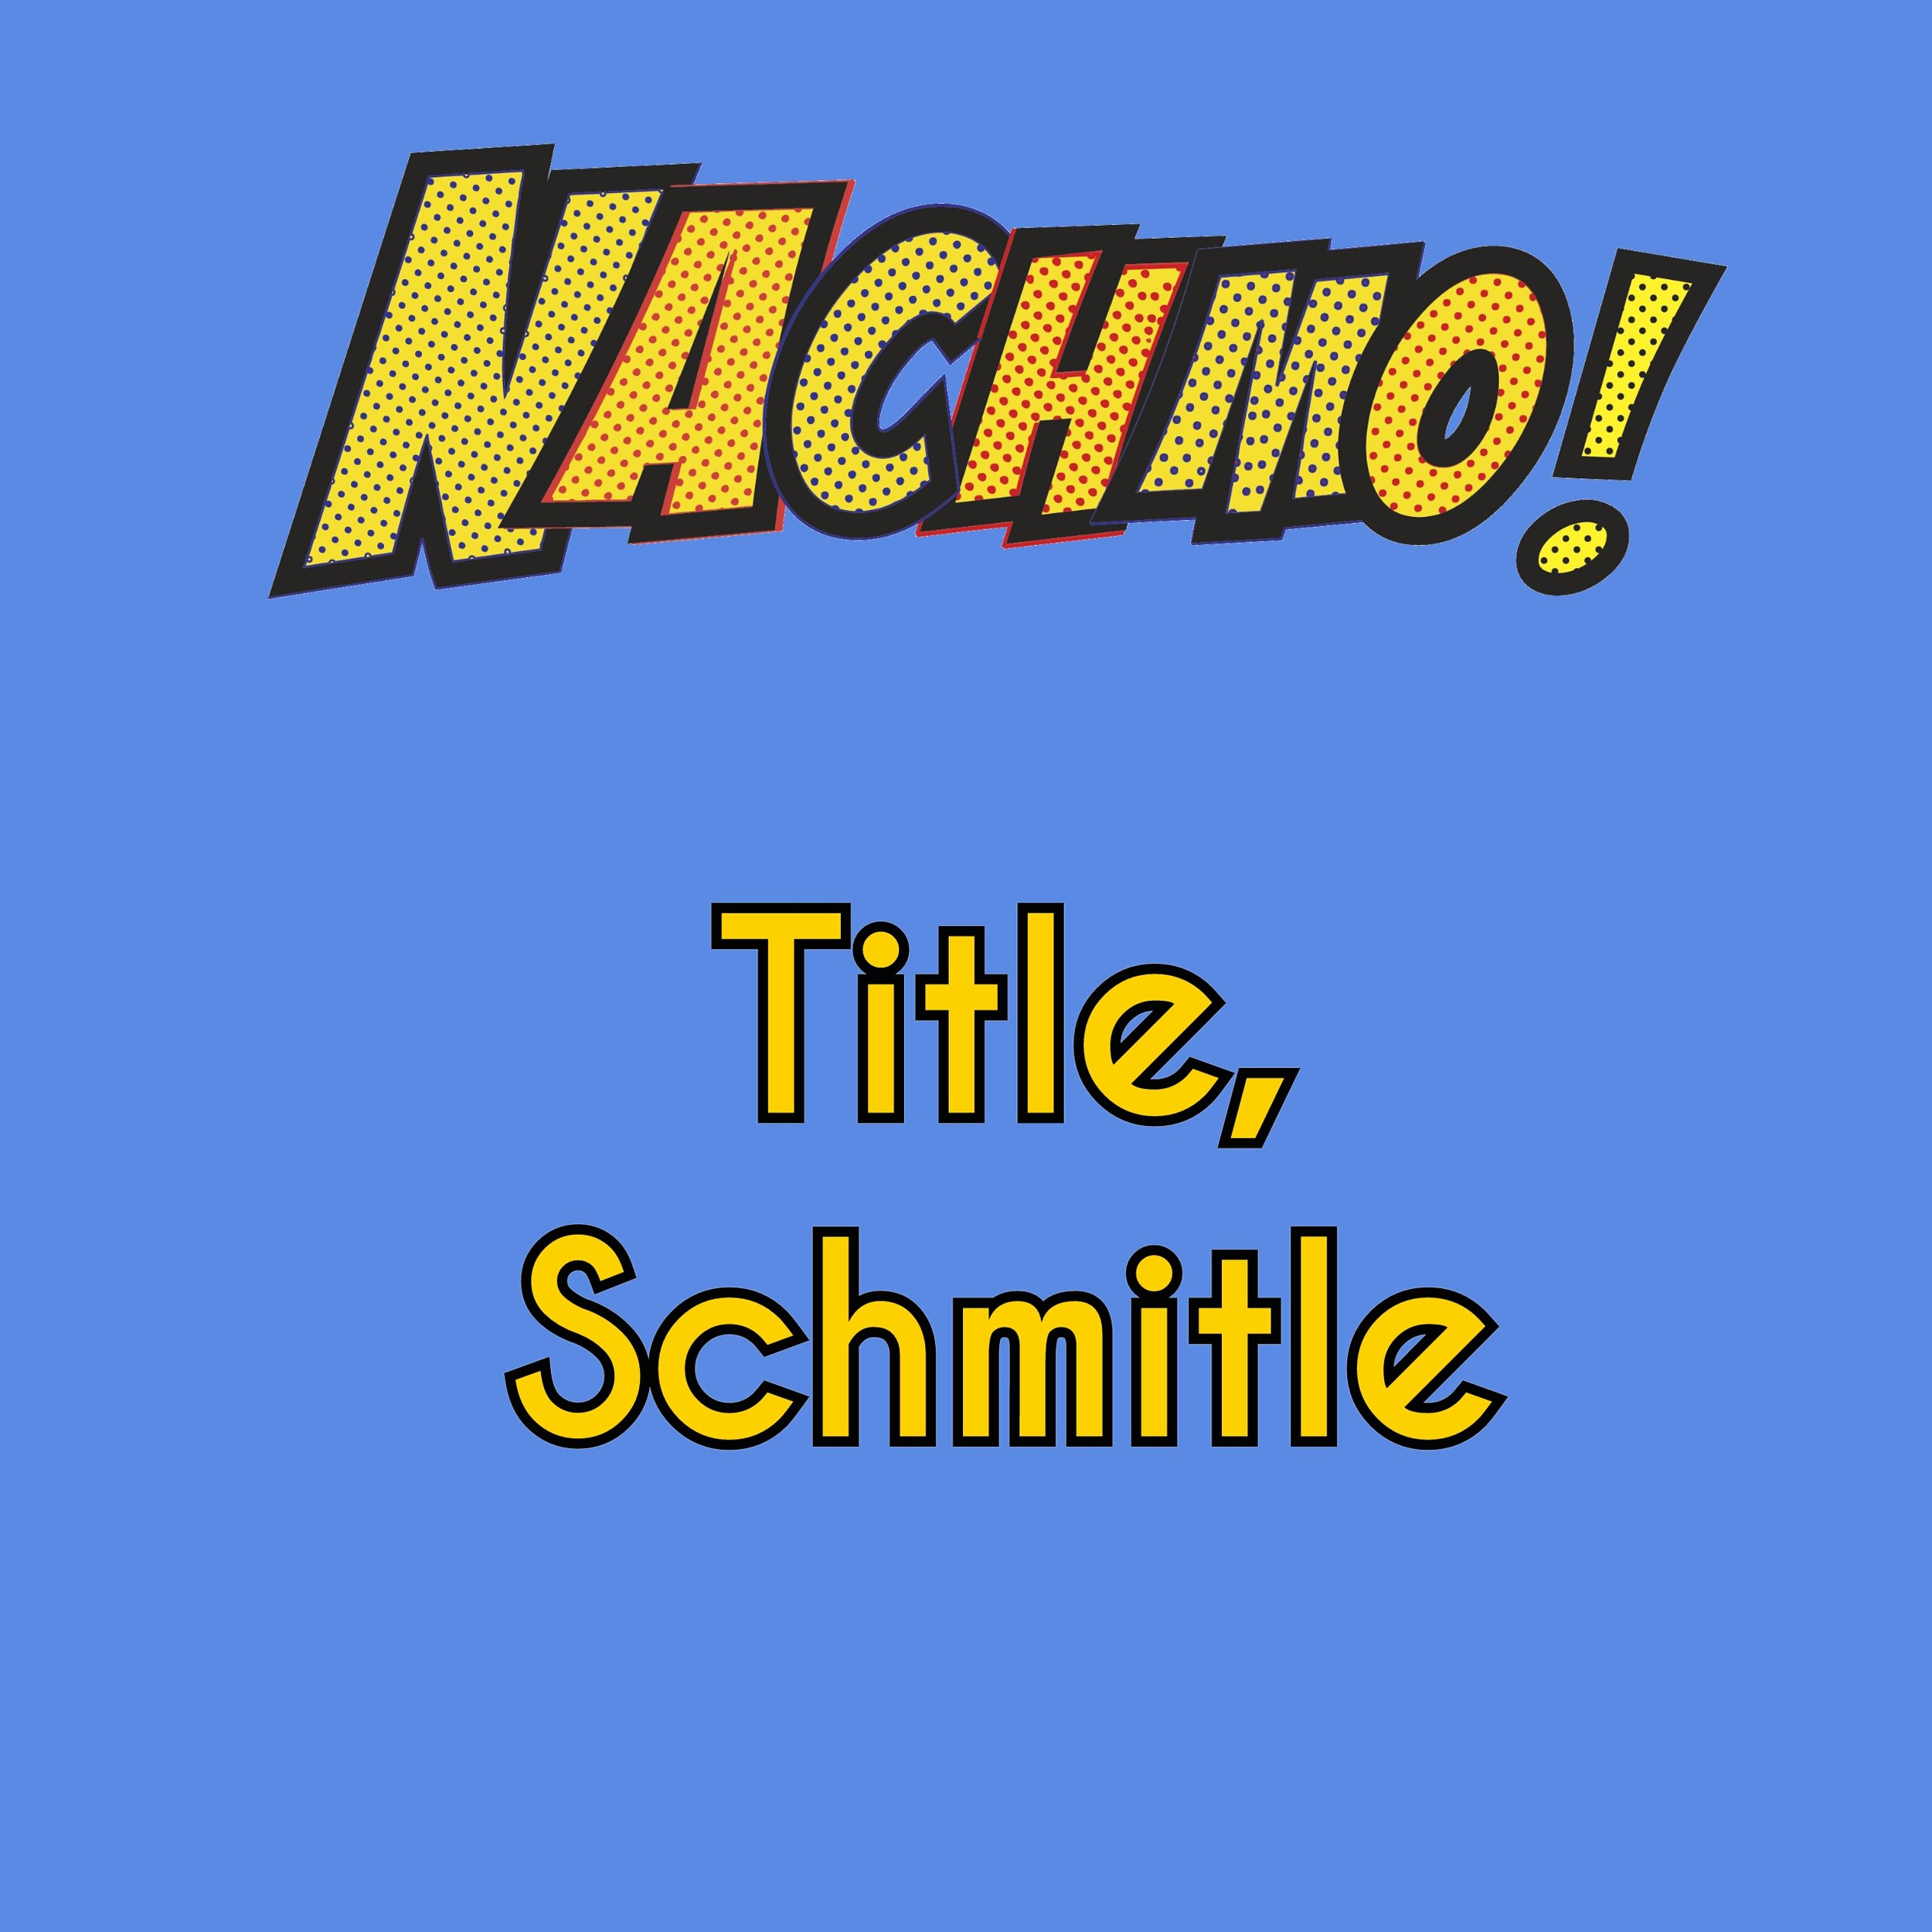 Jan 26: Title, Schmitle - Prompt, Plus, Lens: Come up with 10 BAD titles for your piece. Post the worst three.